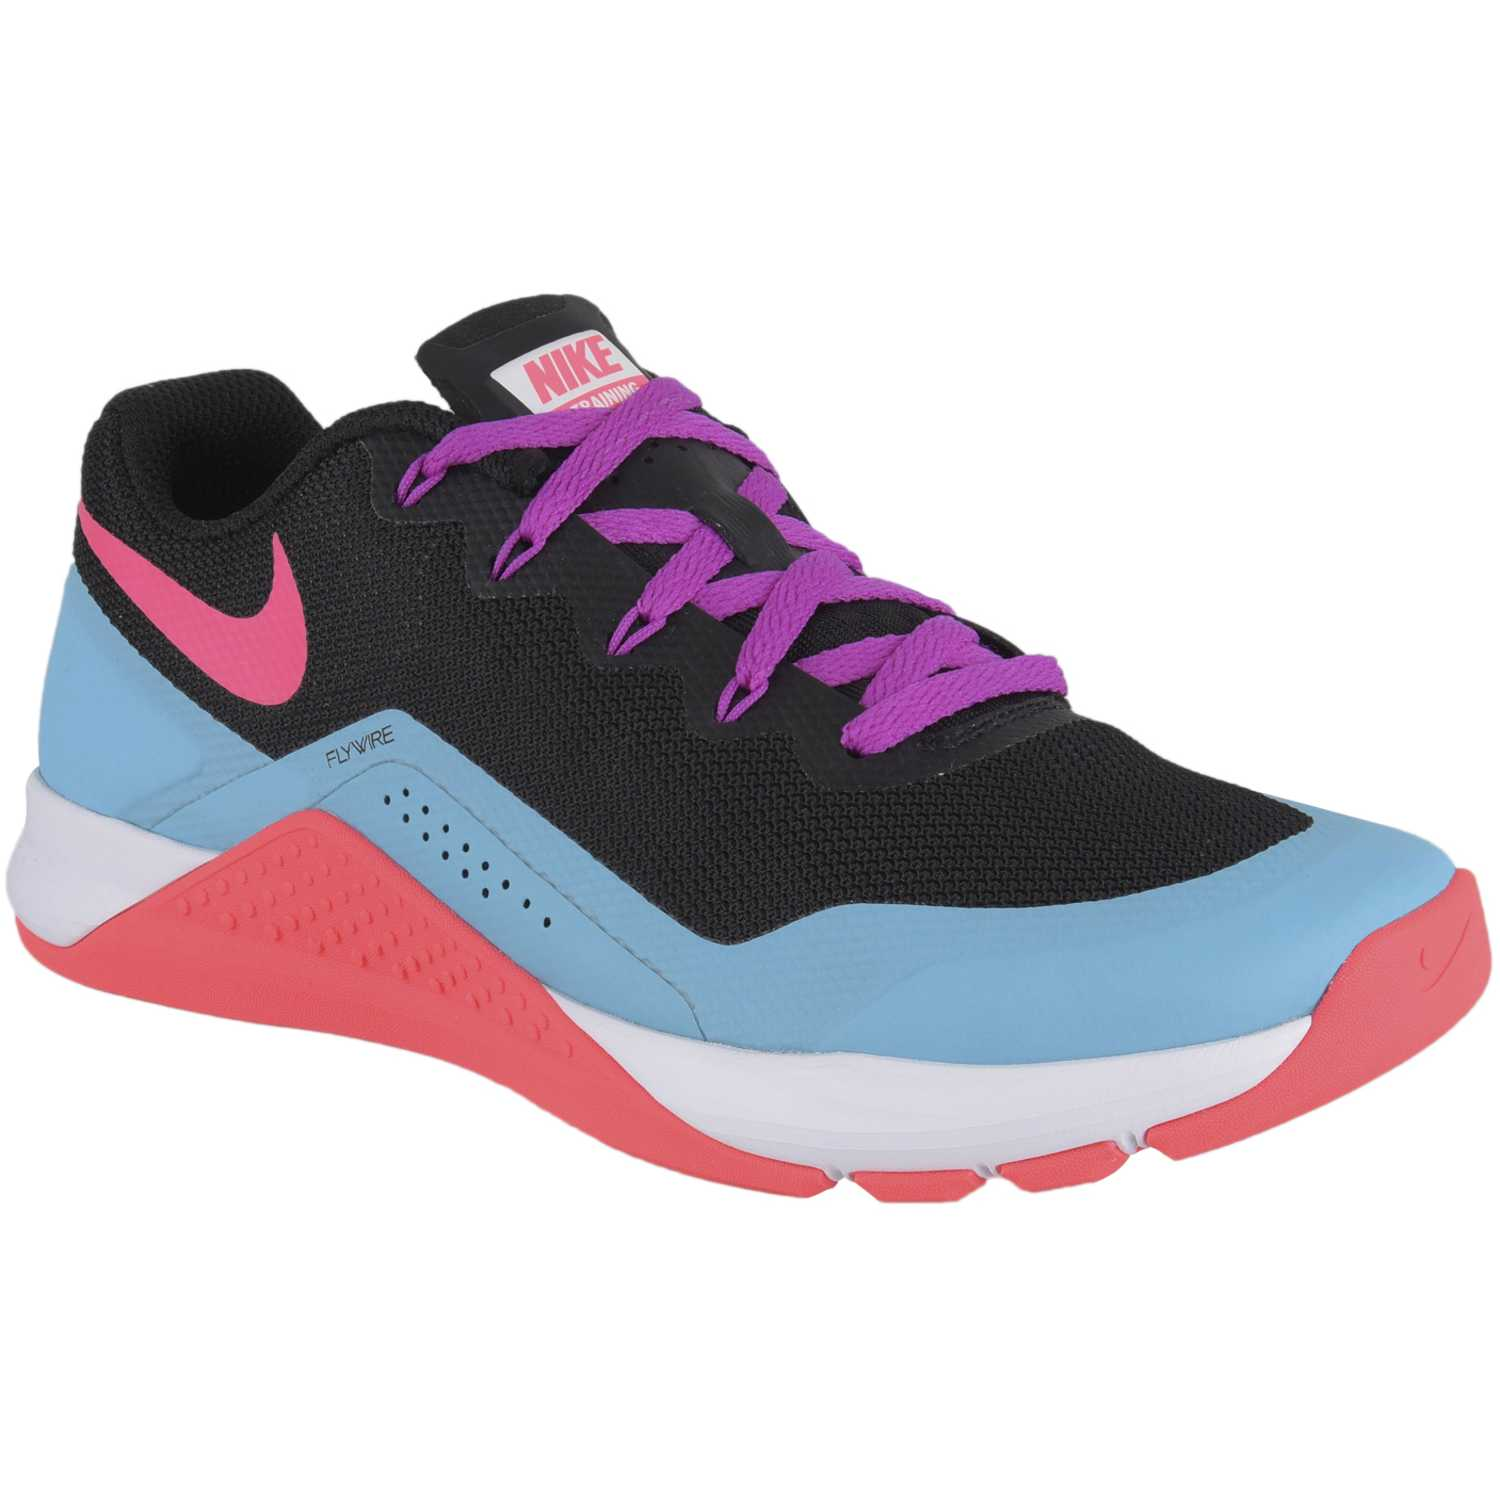 Nike Metcon Repper Dsx Mujer Cheap Online